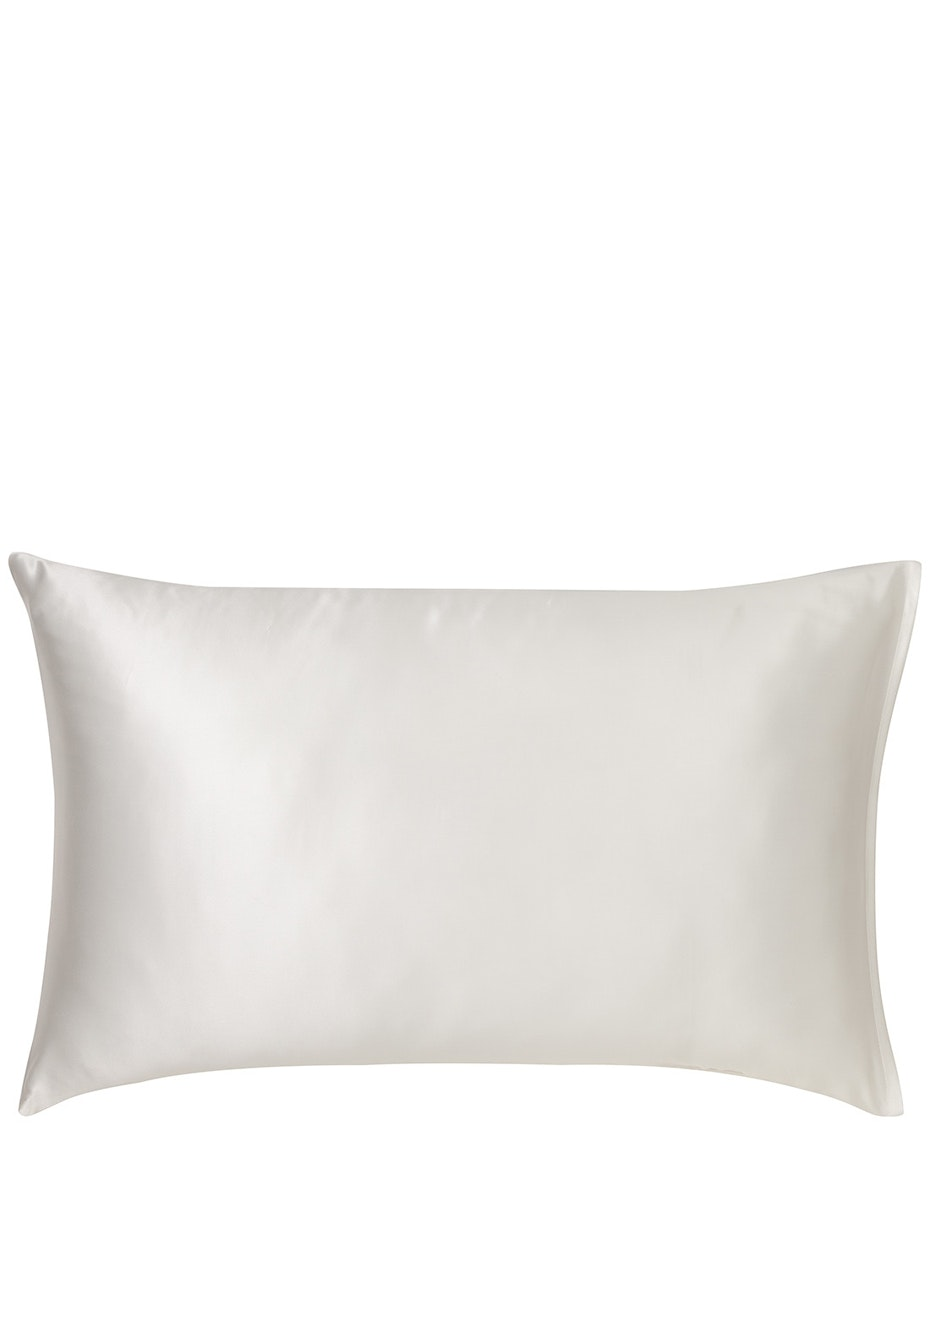 Canningvale Silk Pillowcase Set of 2 - Ivory